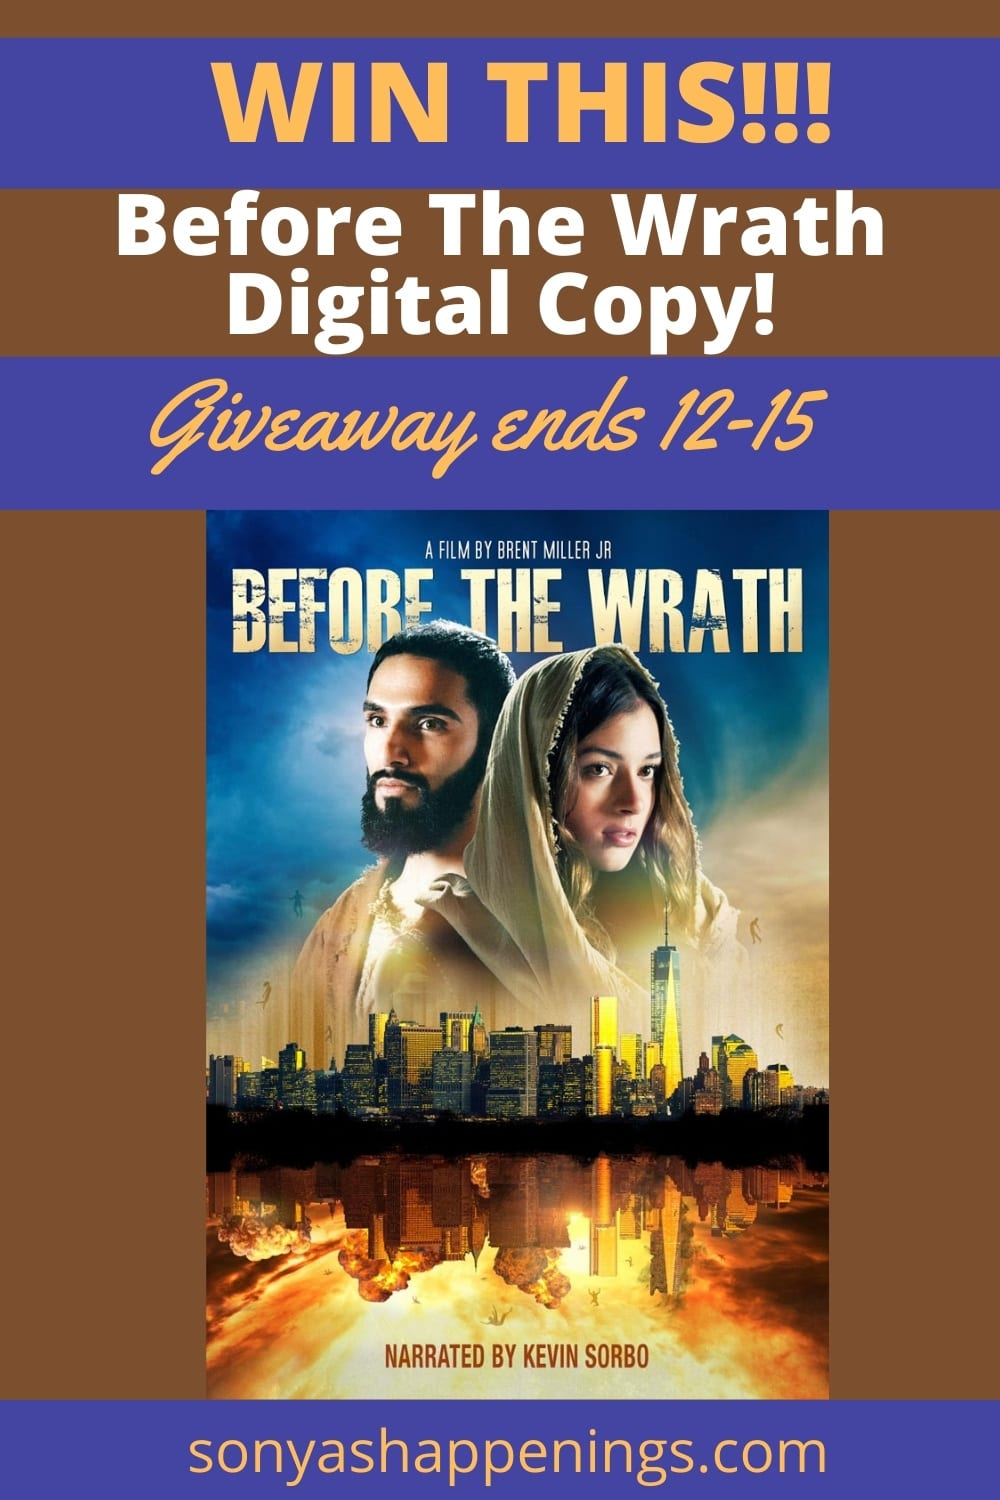 Before The Wrath - #1 Christian Film - Giveaway Ends 12-15 #beforethewrathmovie